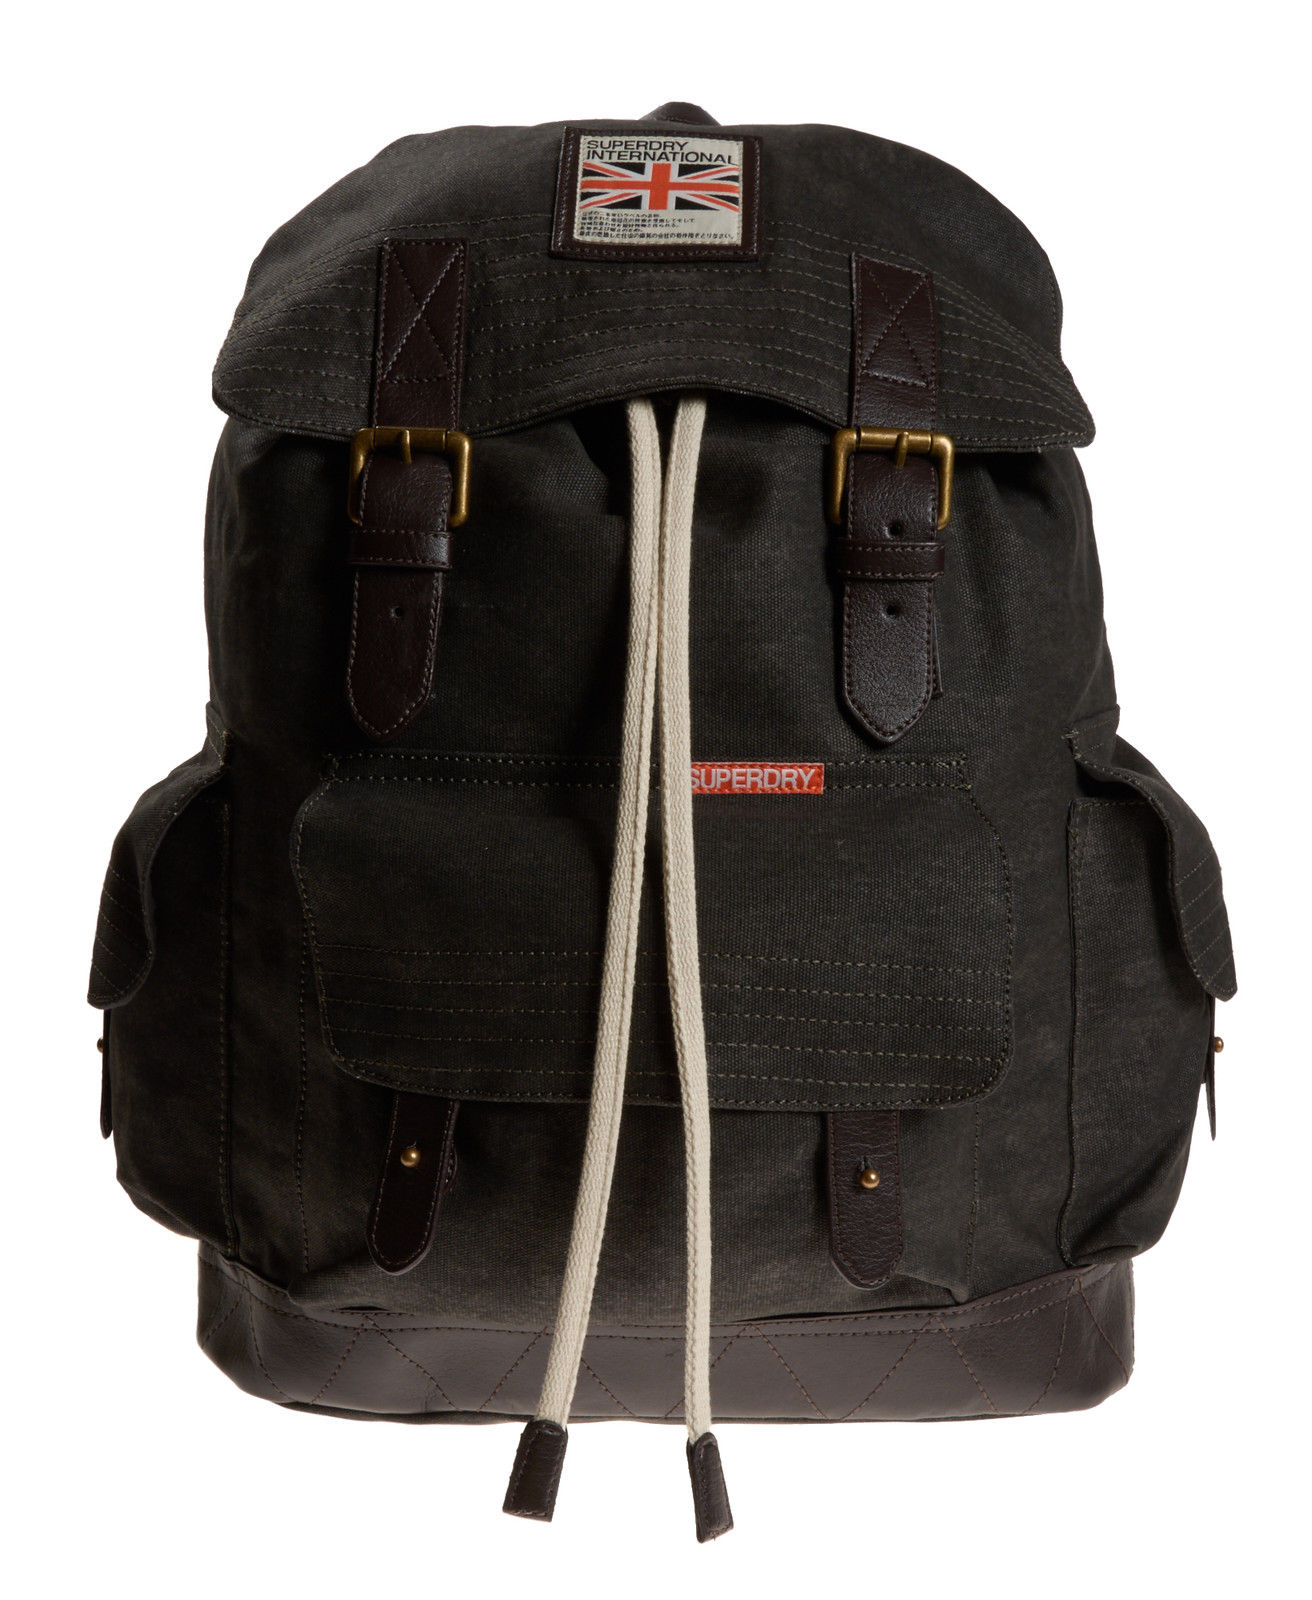 superdry-bags-on-sale-5